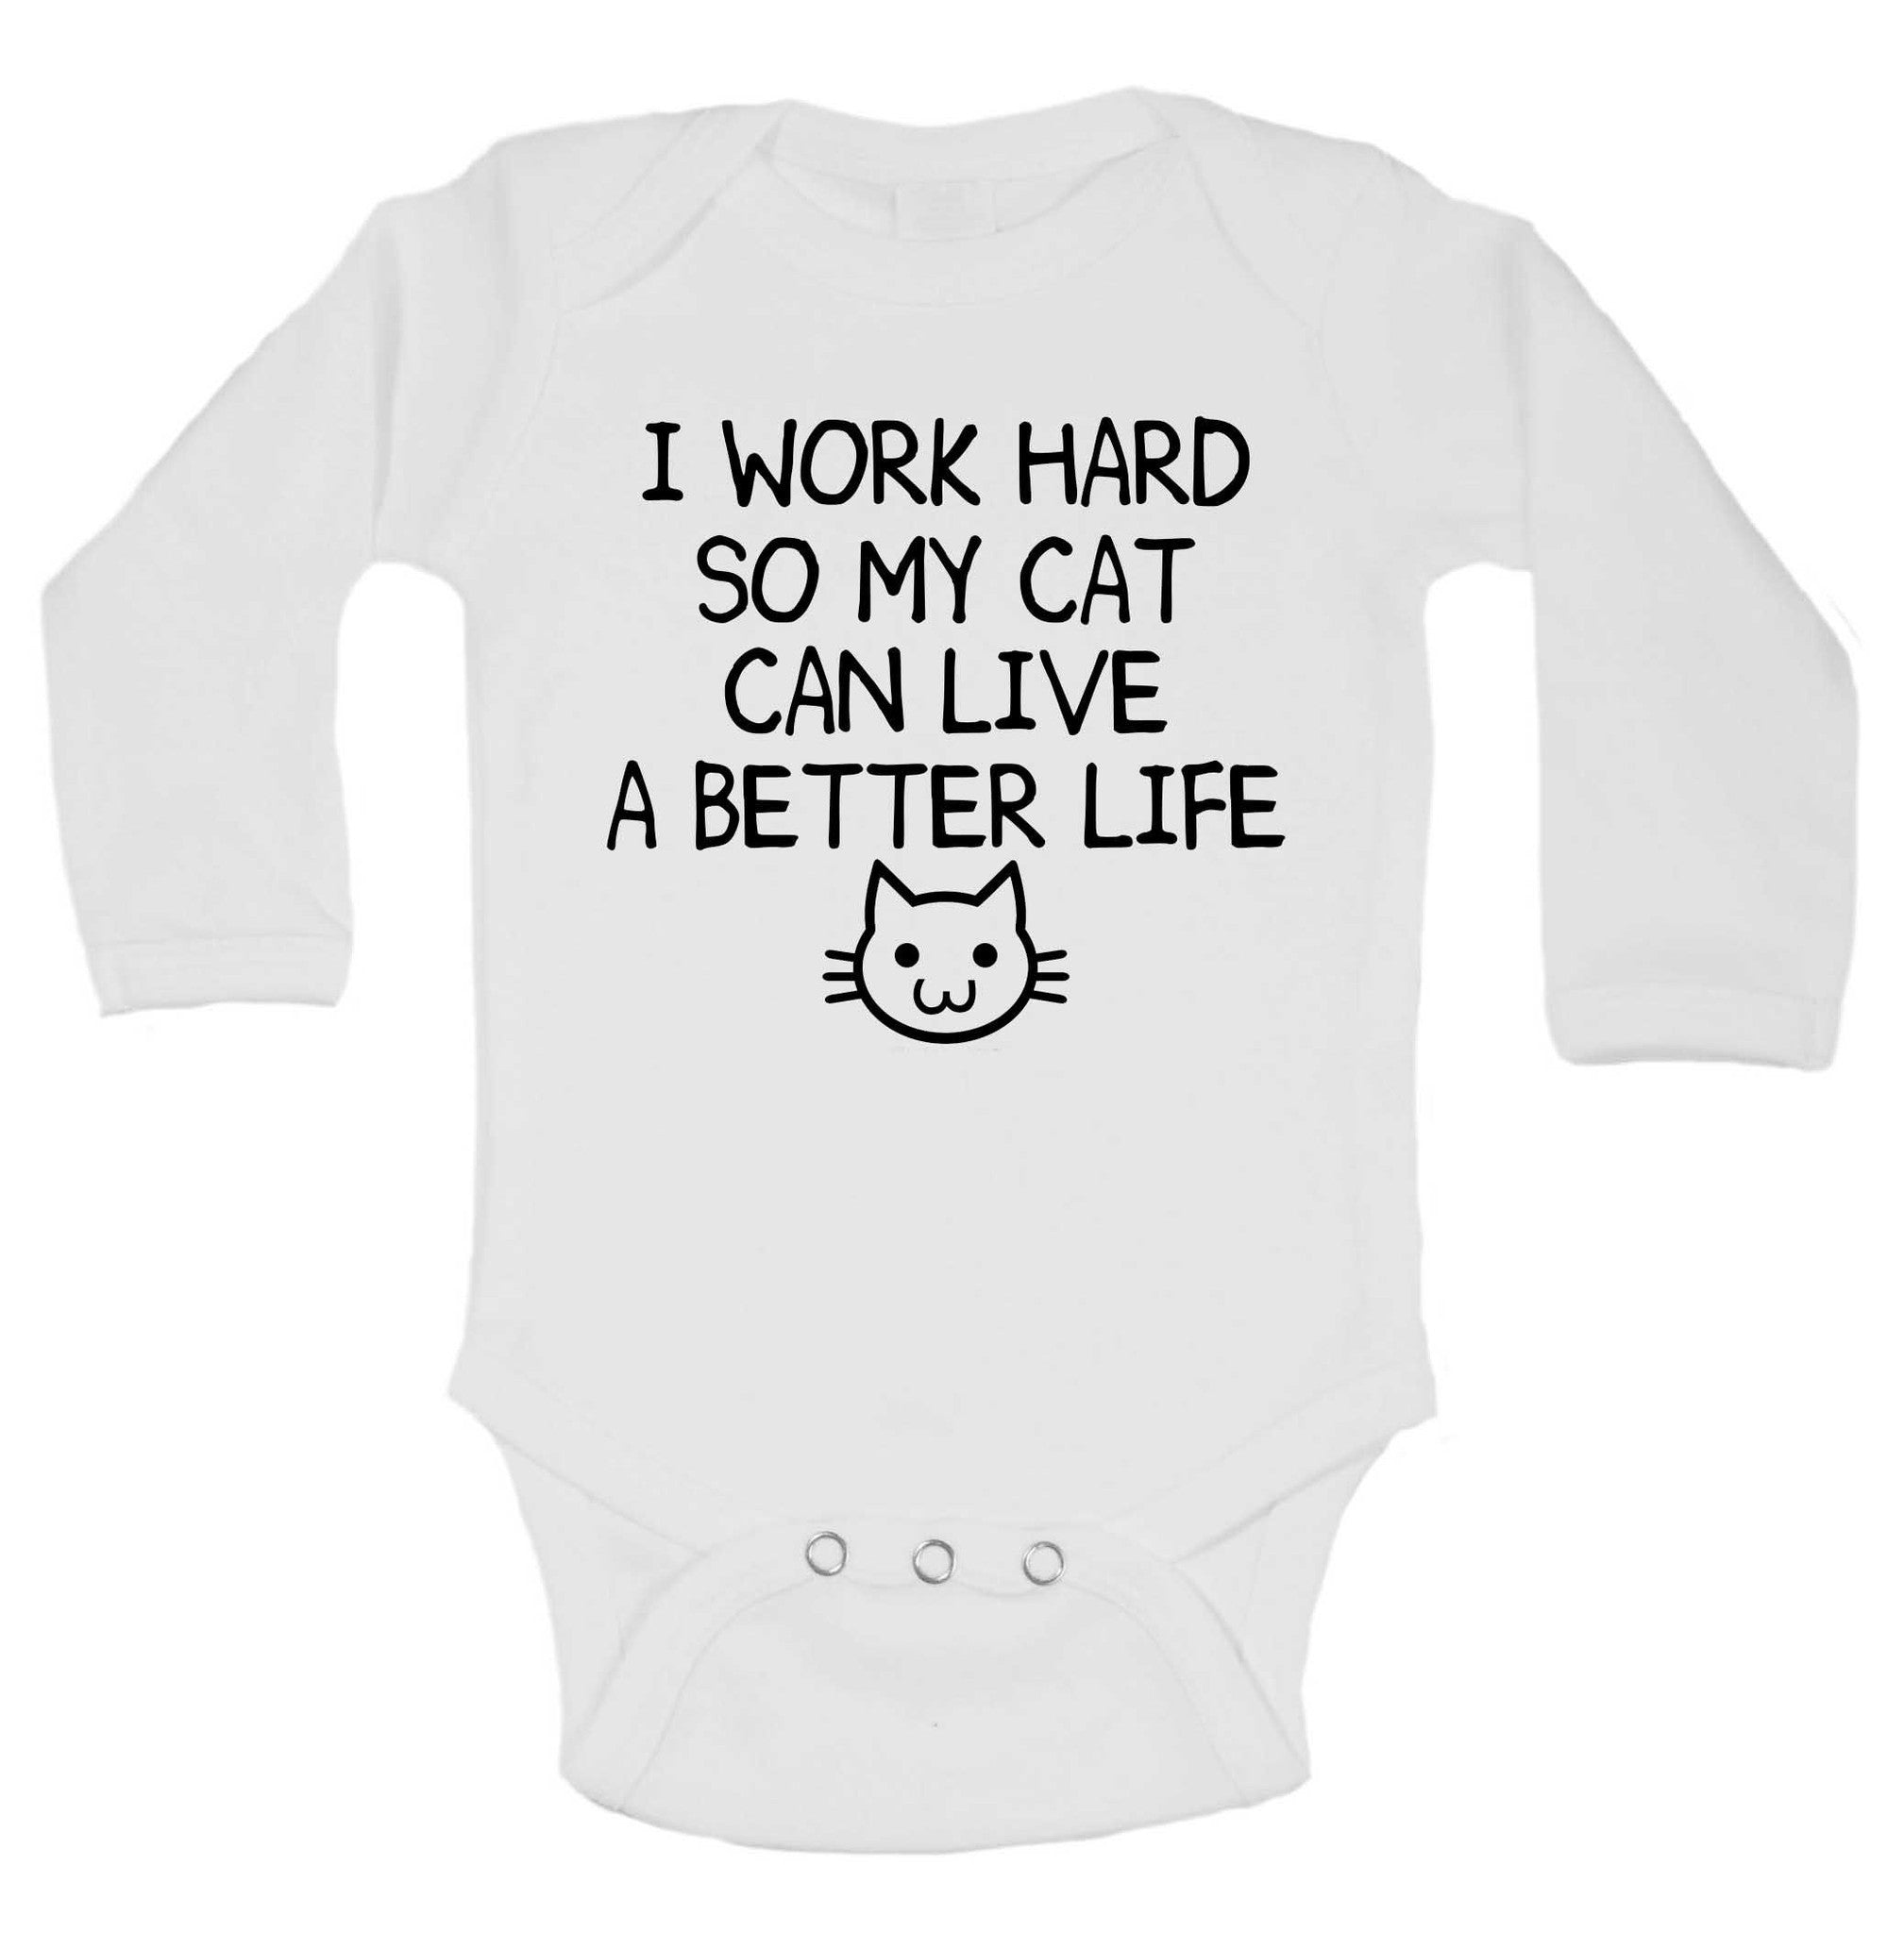 I Work Hard So My Cat Can Live A Better Life Funny Kids Onesie - 237 - Funny Shirts Tank Tops Burnouts and Triblends  - 1